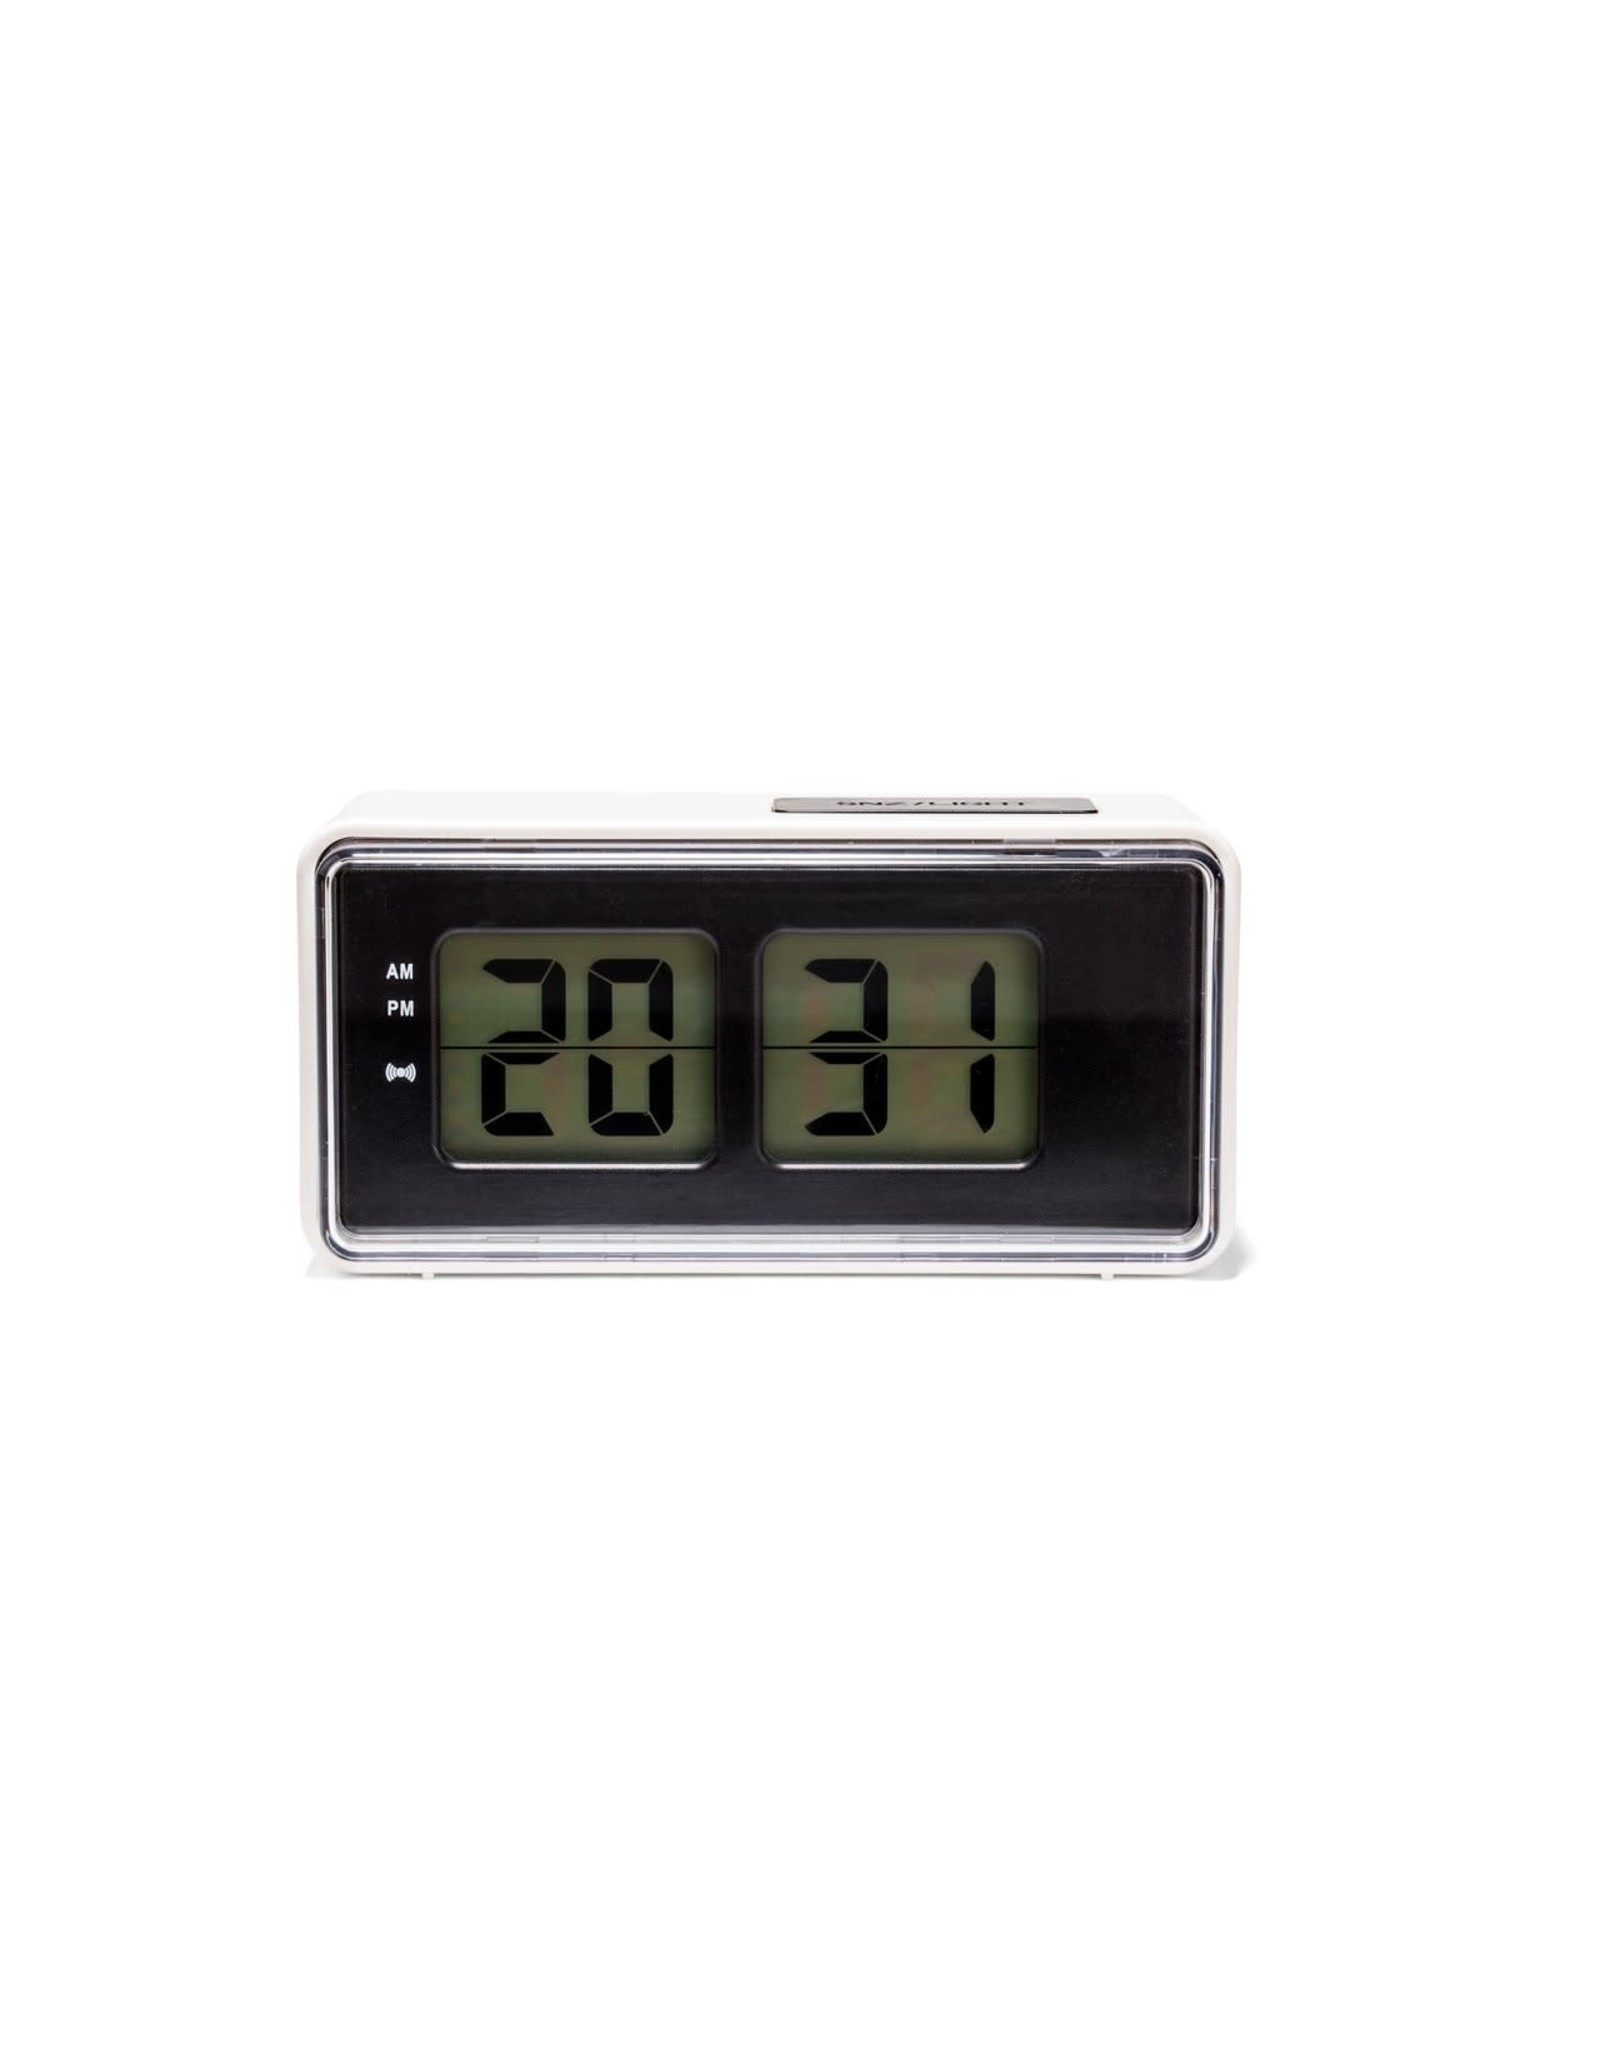 KIK Digital Alarm Clock in White